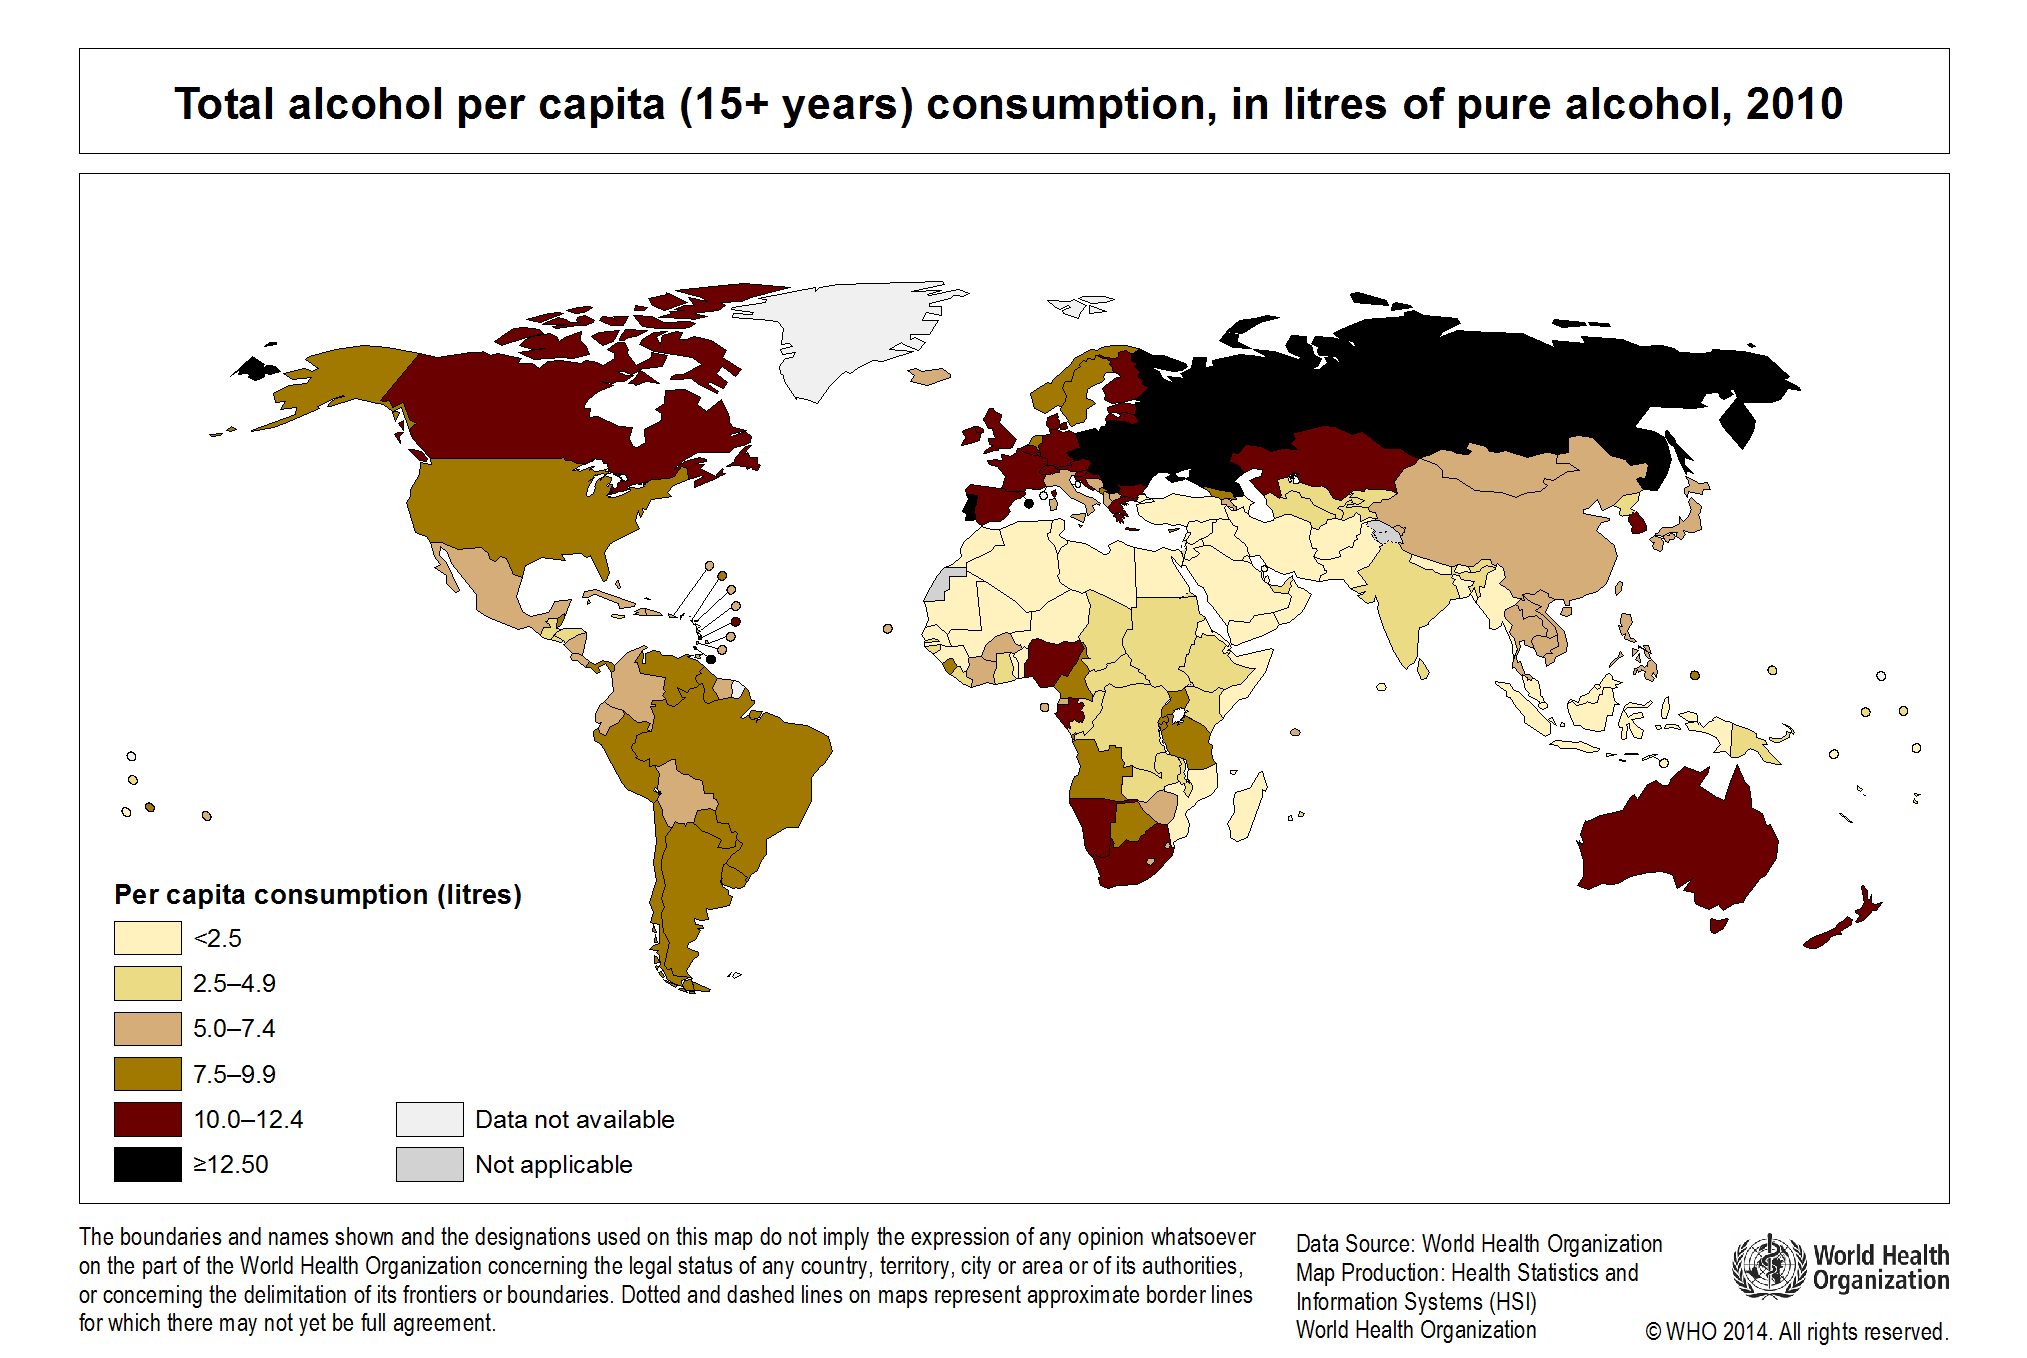 http://gamapserver.who.int/mapLibrary/Files/Maps/Global_consumption_percapita_2010.png